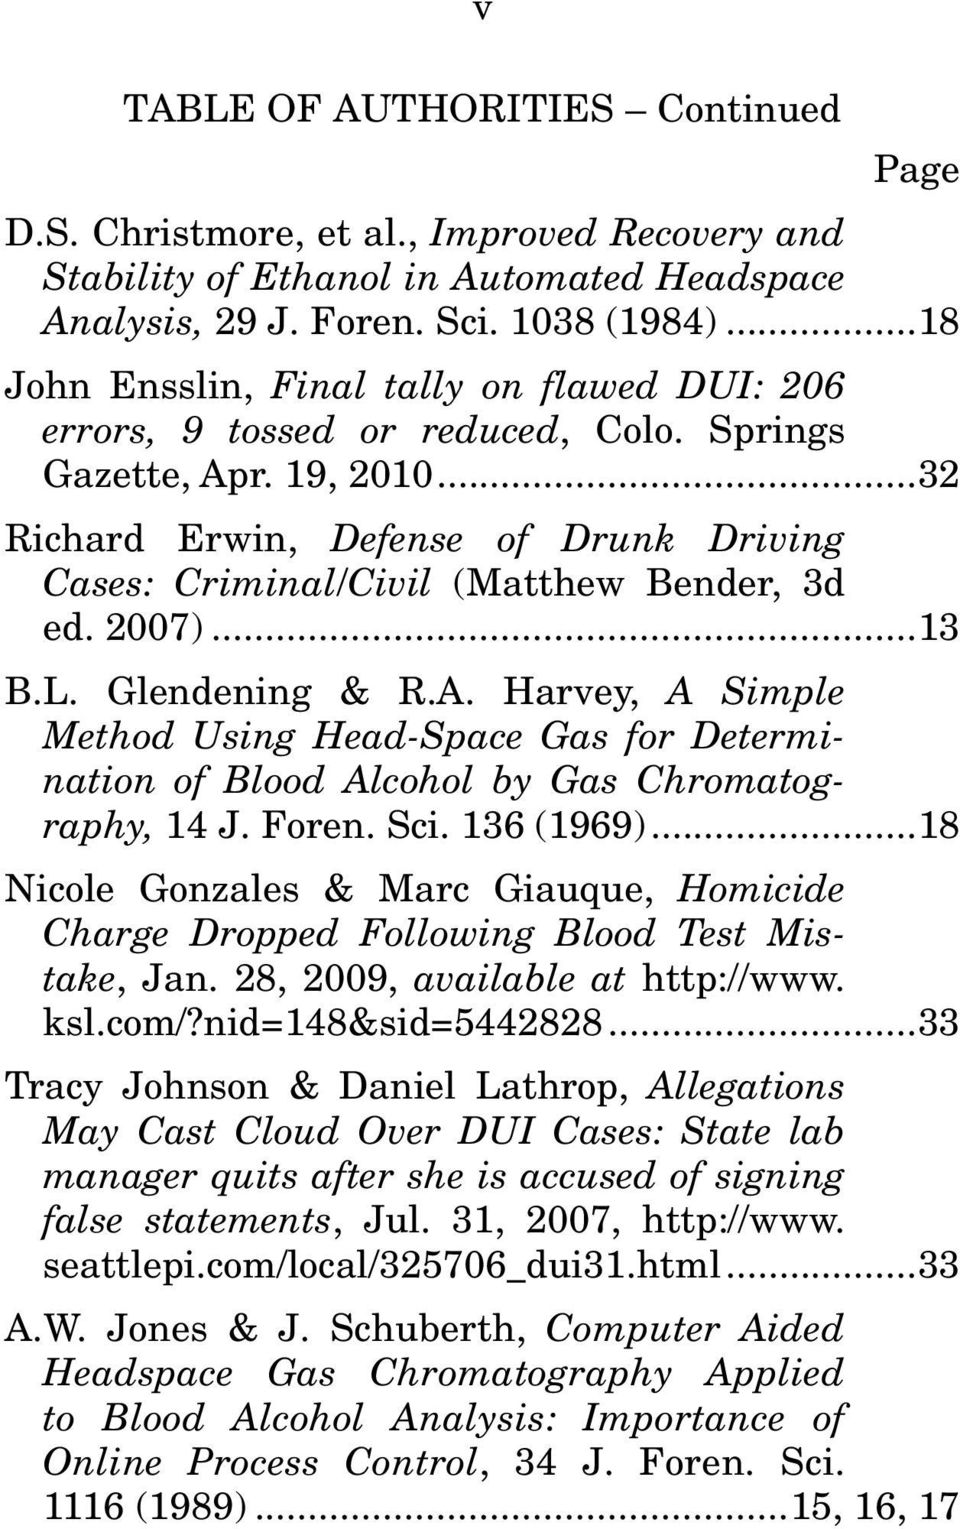 .. 32 Richard Erwin, Defense of Drunk Driving Cases: Criminal/Civil (Matthew Bender, 3d ed. 2007)... 13 B.L. Glendening & R.A.